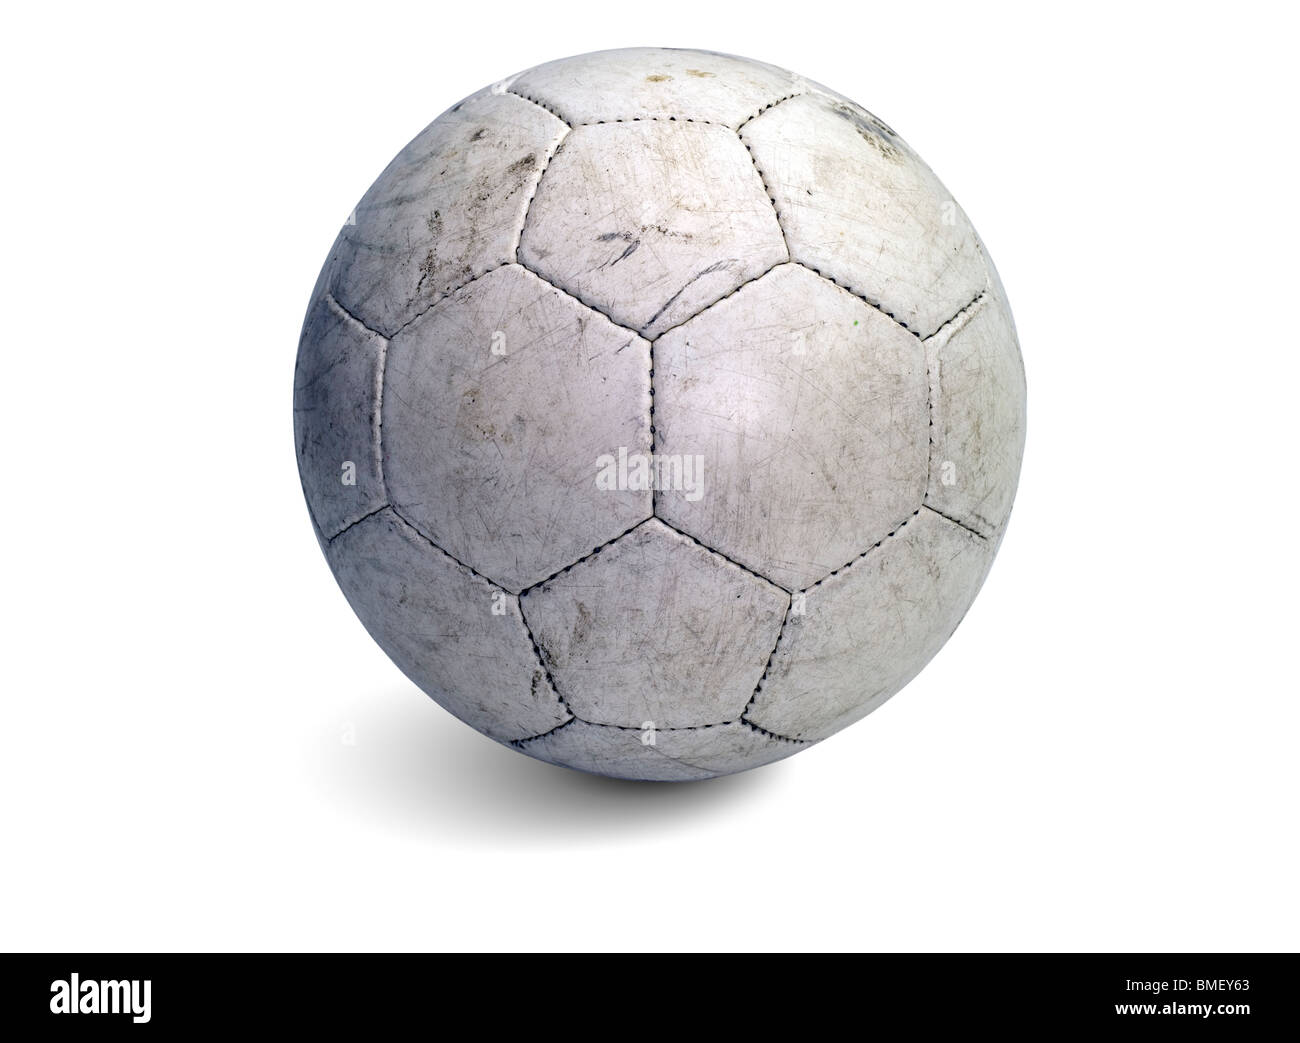 Soccer ball white with shadow - Stock Image